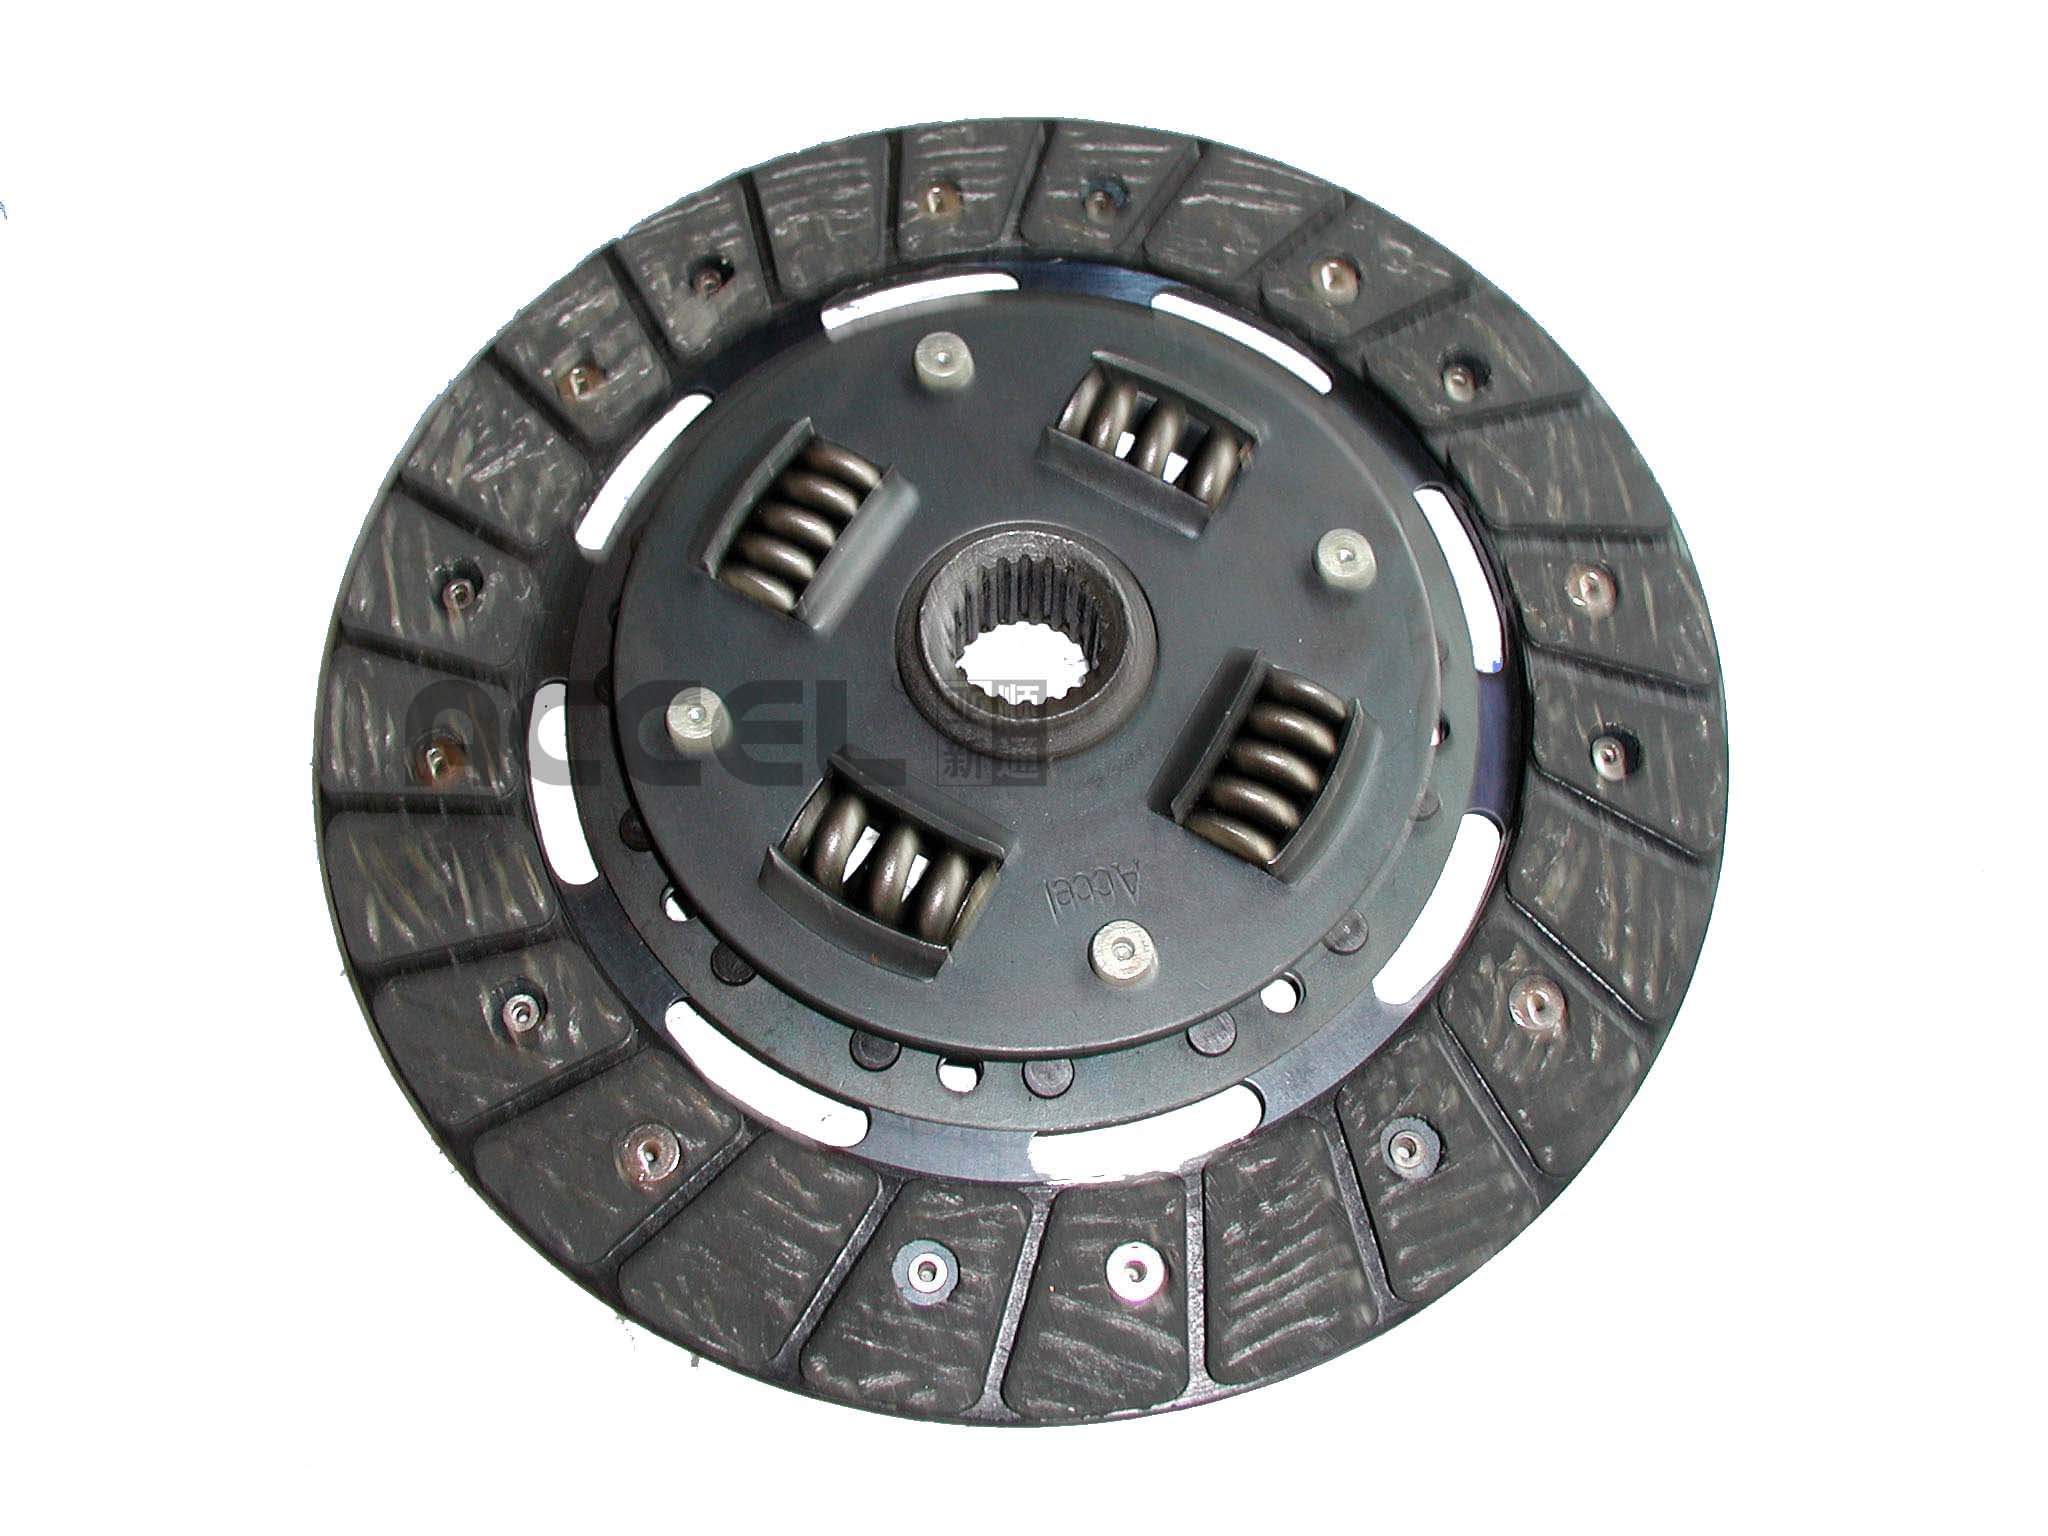 Clutch Disc/OE:22200-689-020/200*140*21*22/AHC-005/HONDA/CL0233/SC340